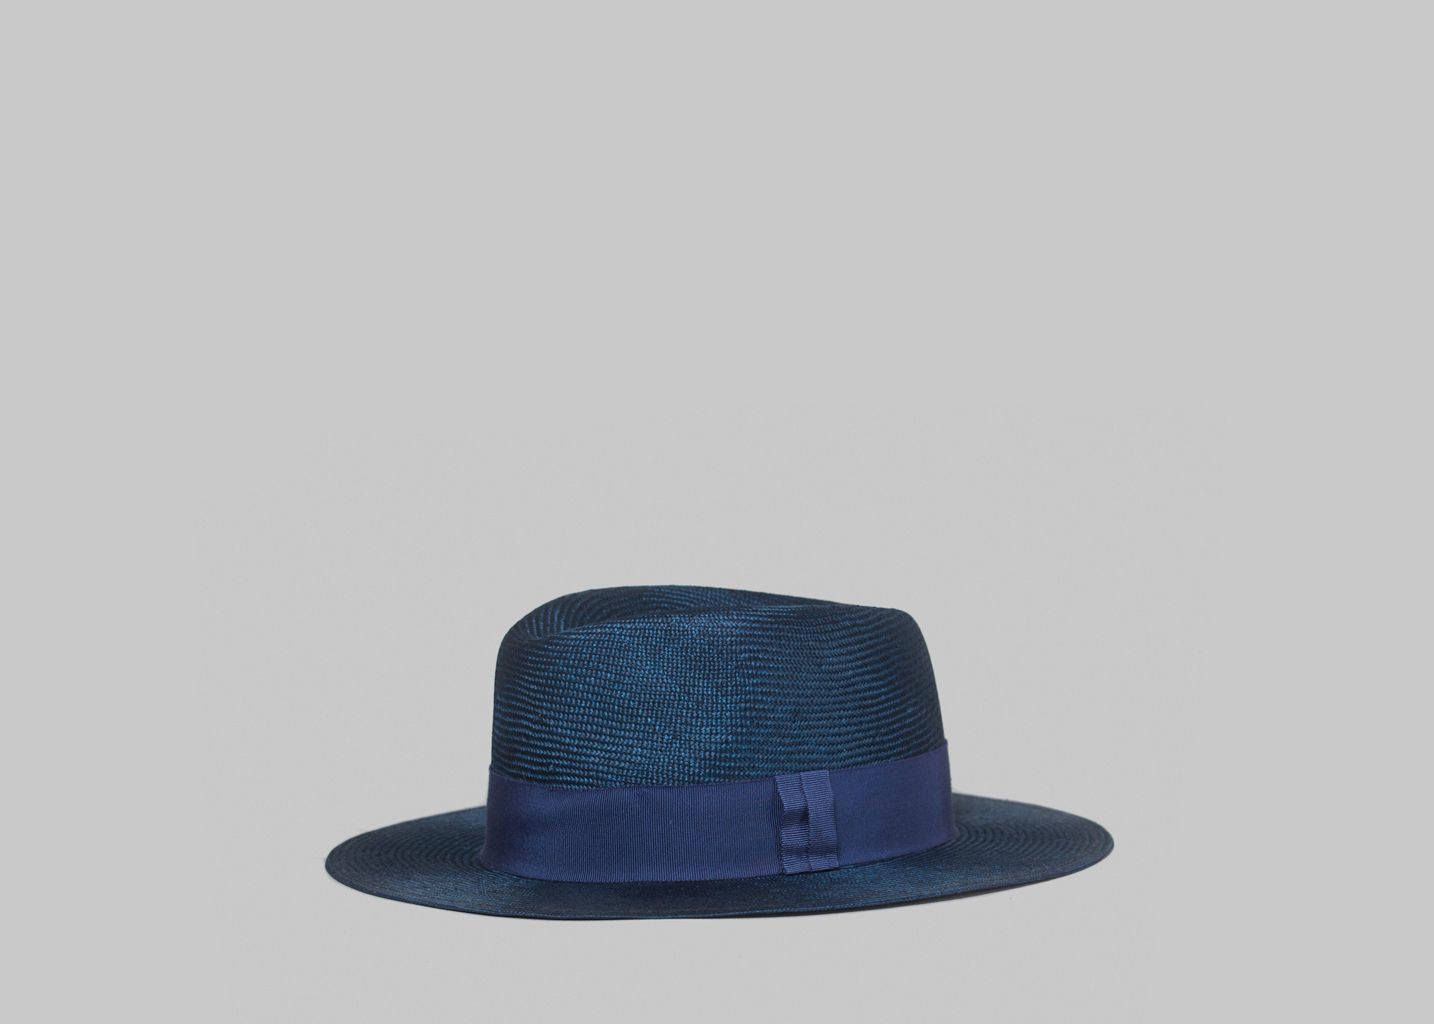 681f498bc77 Sisal Hat Navy Blue Larose Paris